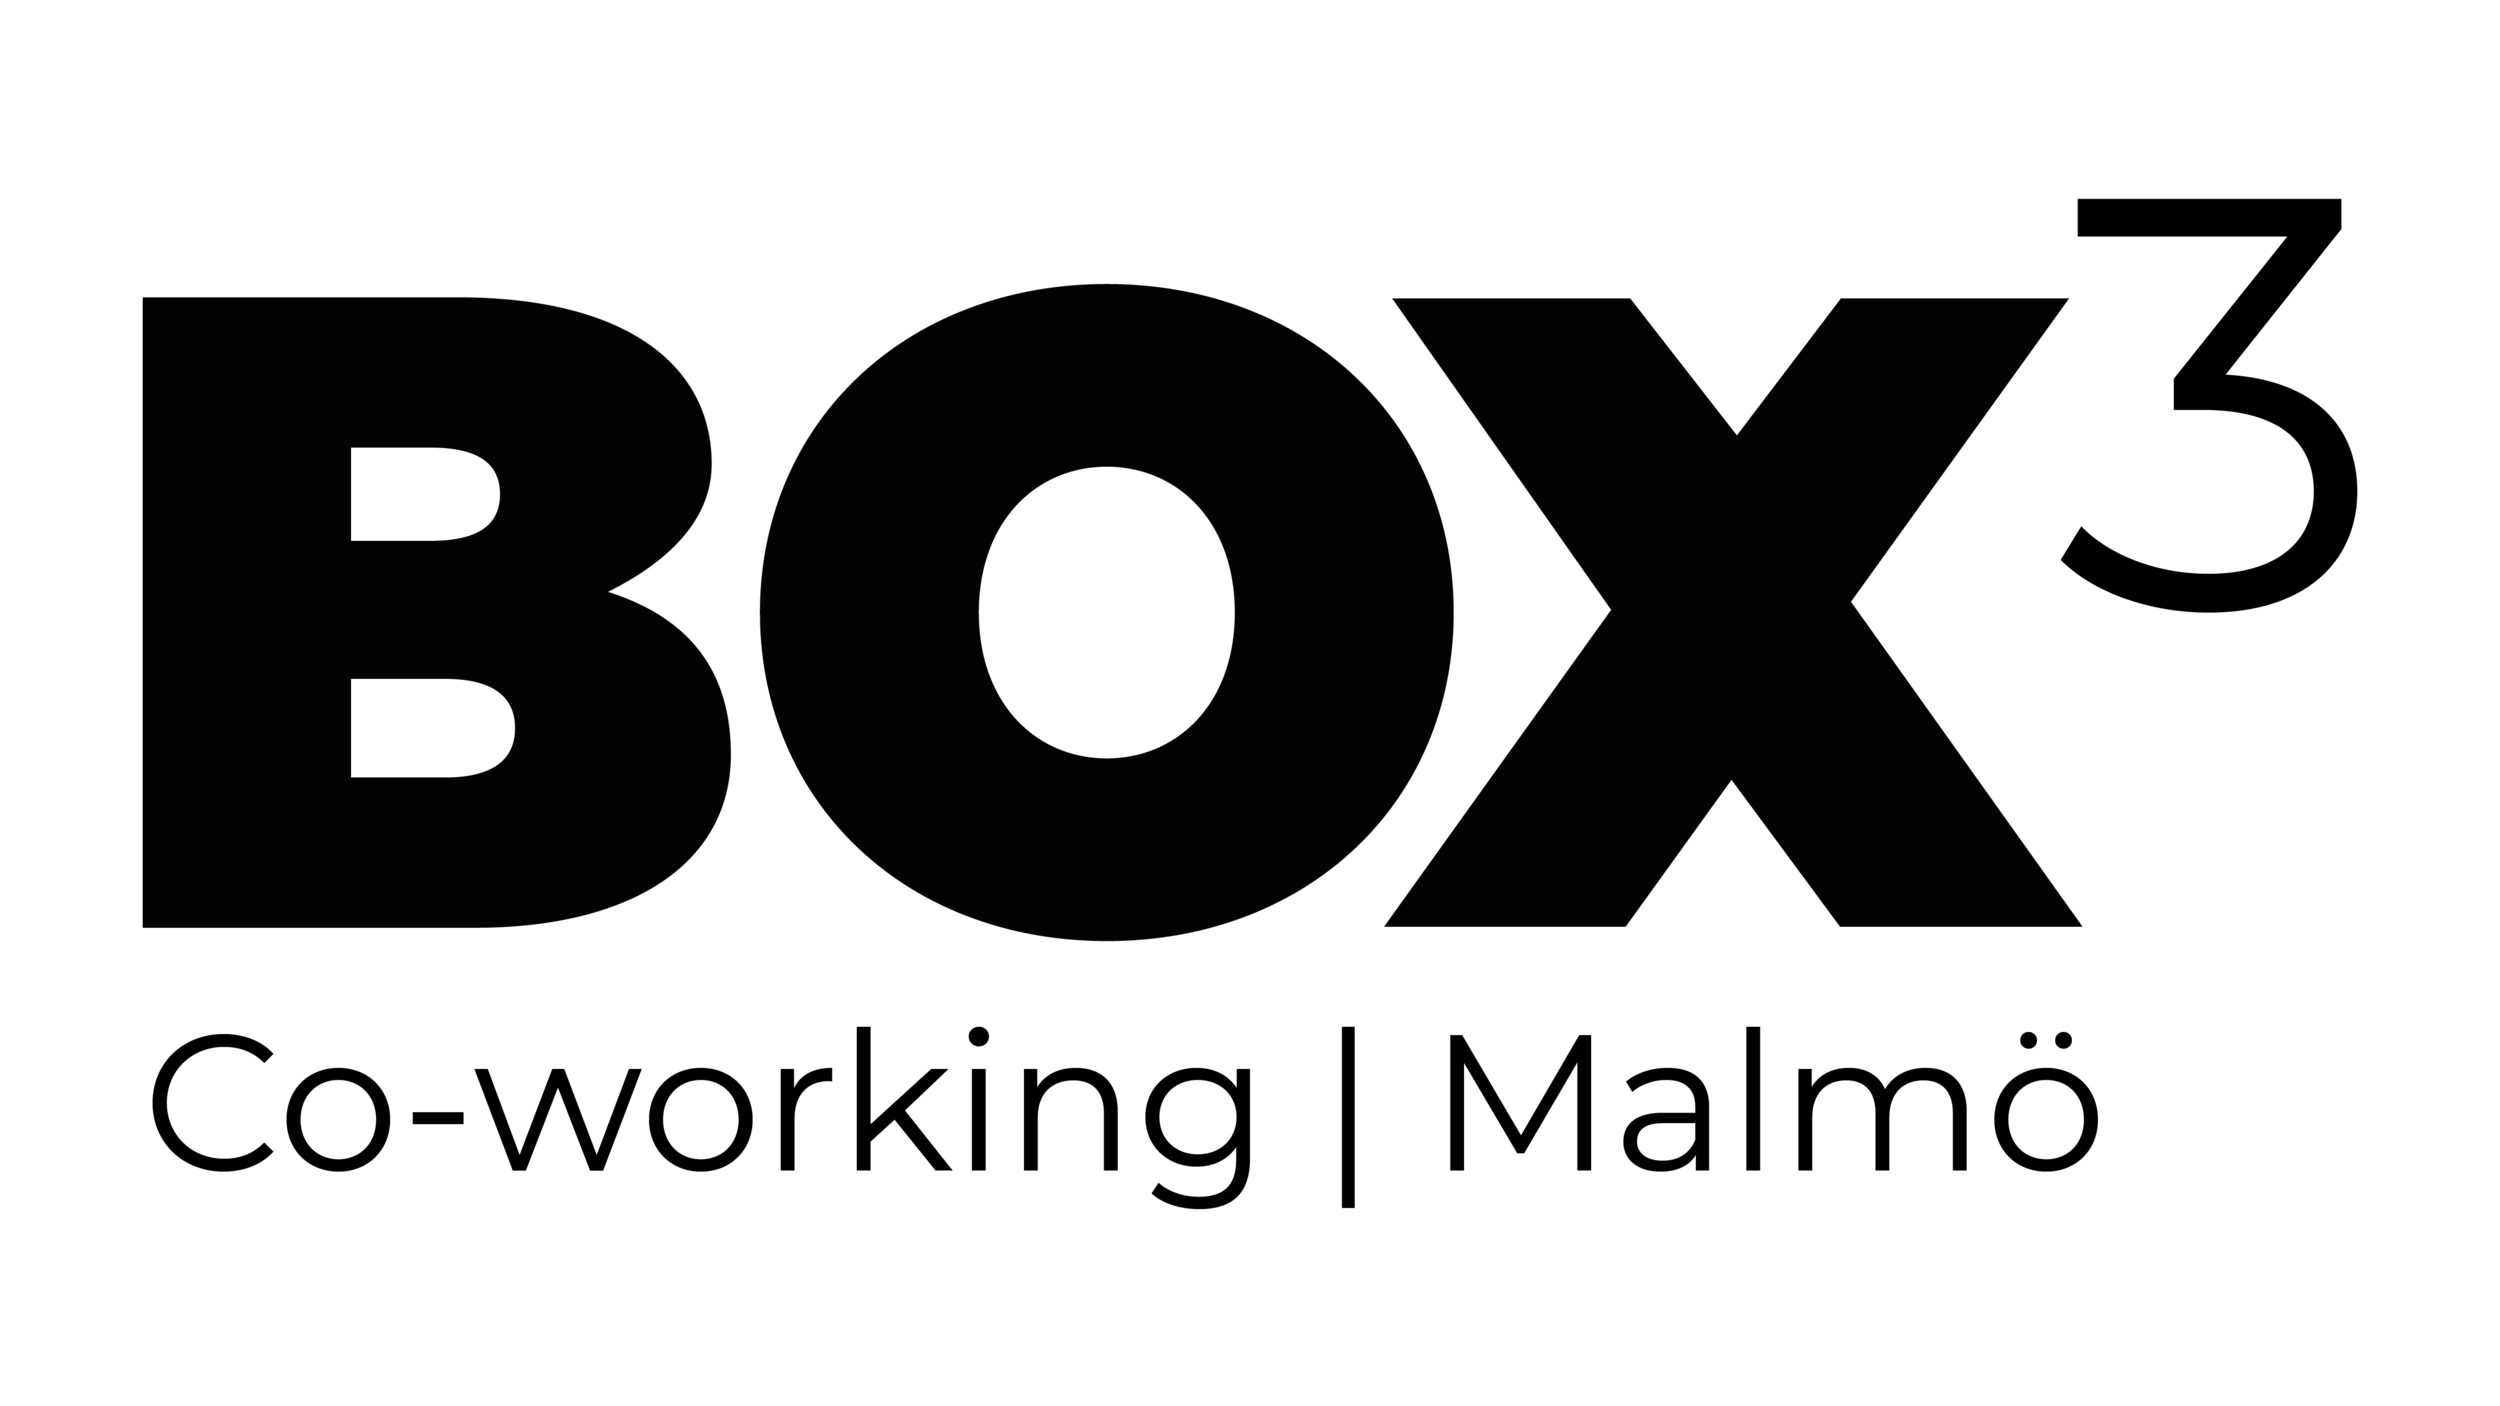 box-space-coworking-logo-black.jpg